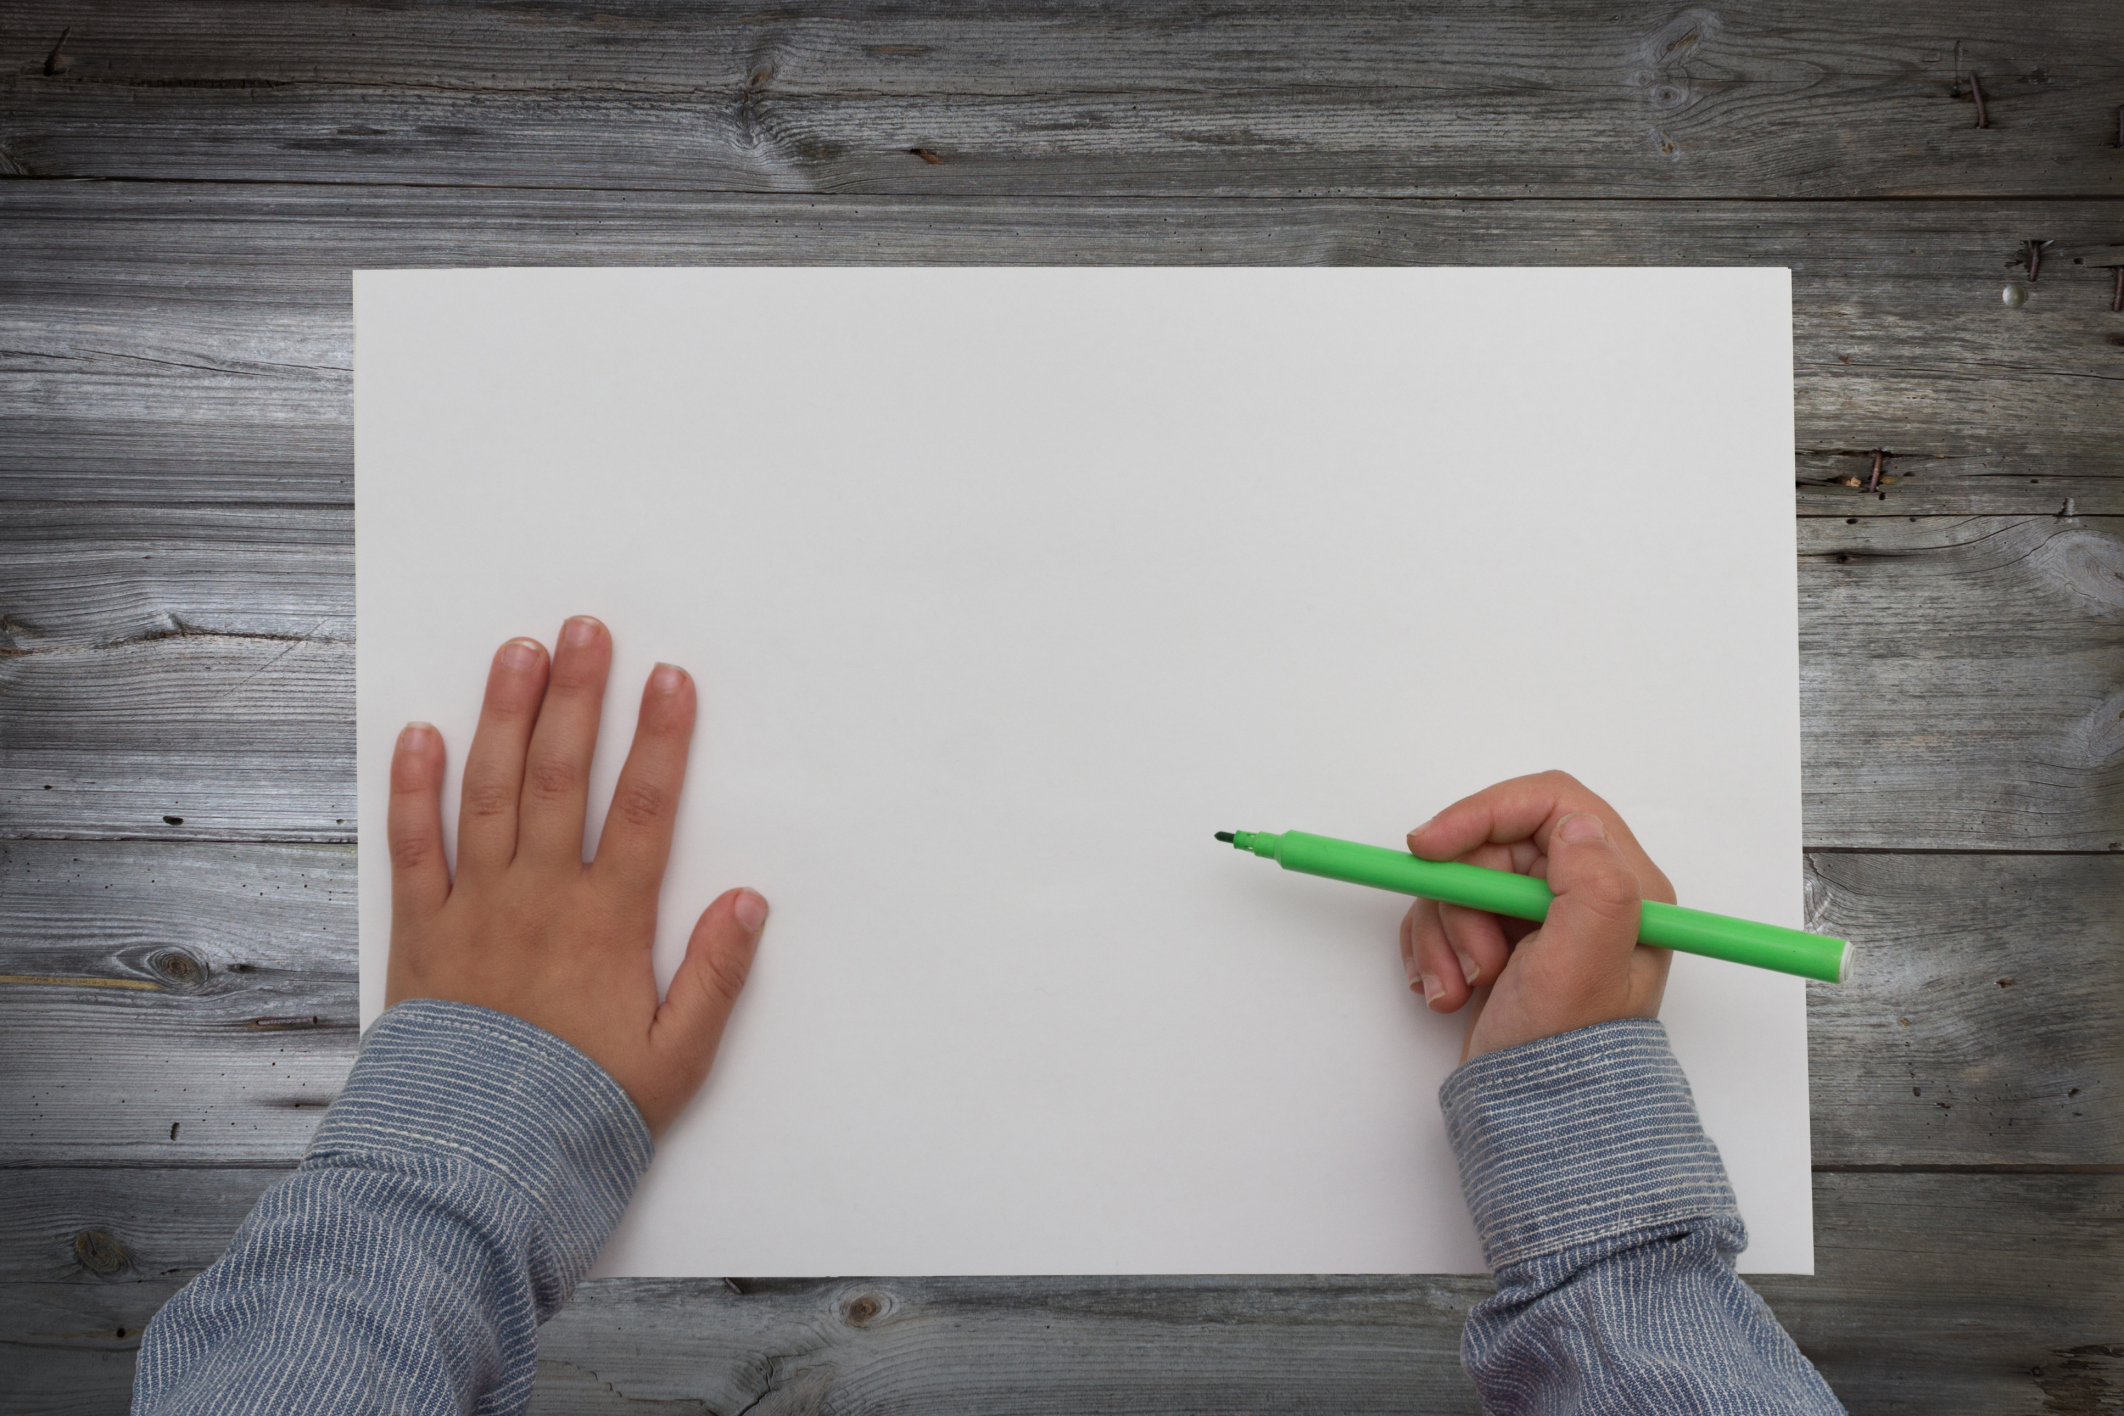 How to Improve a 5-Year-Old's Handwriting and Reading